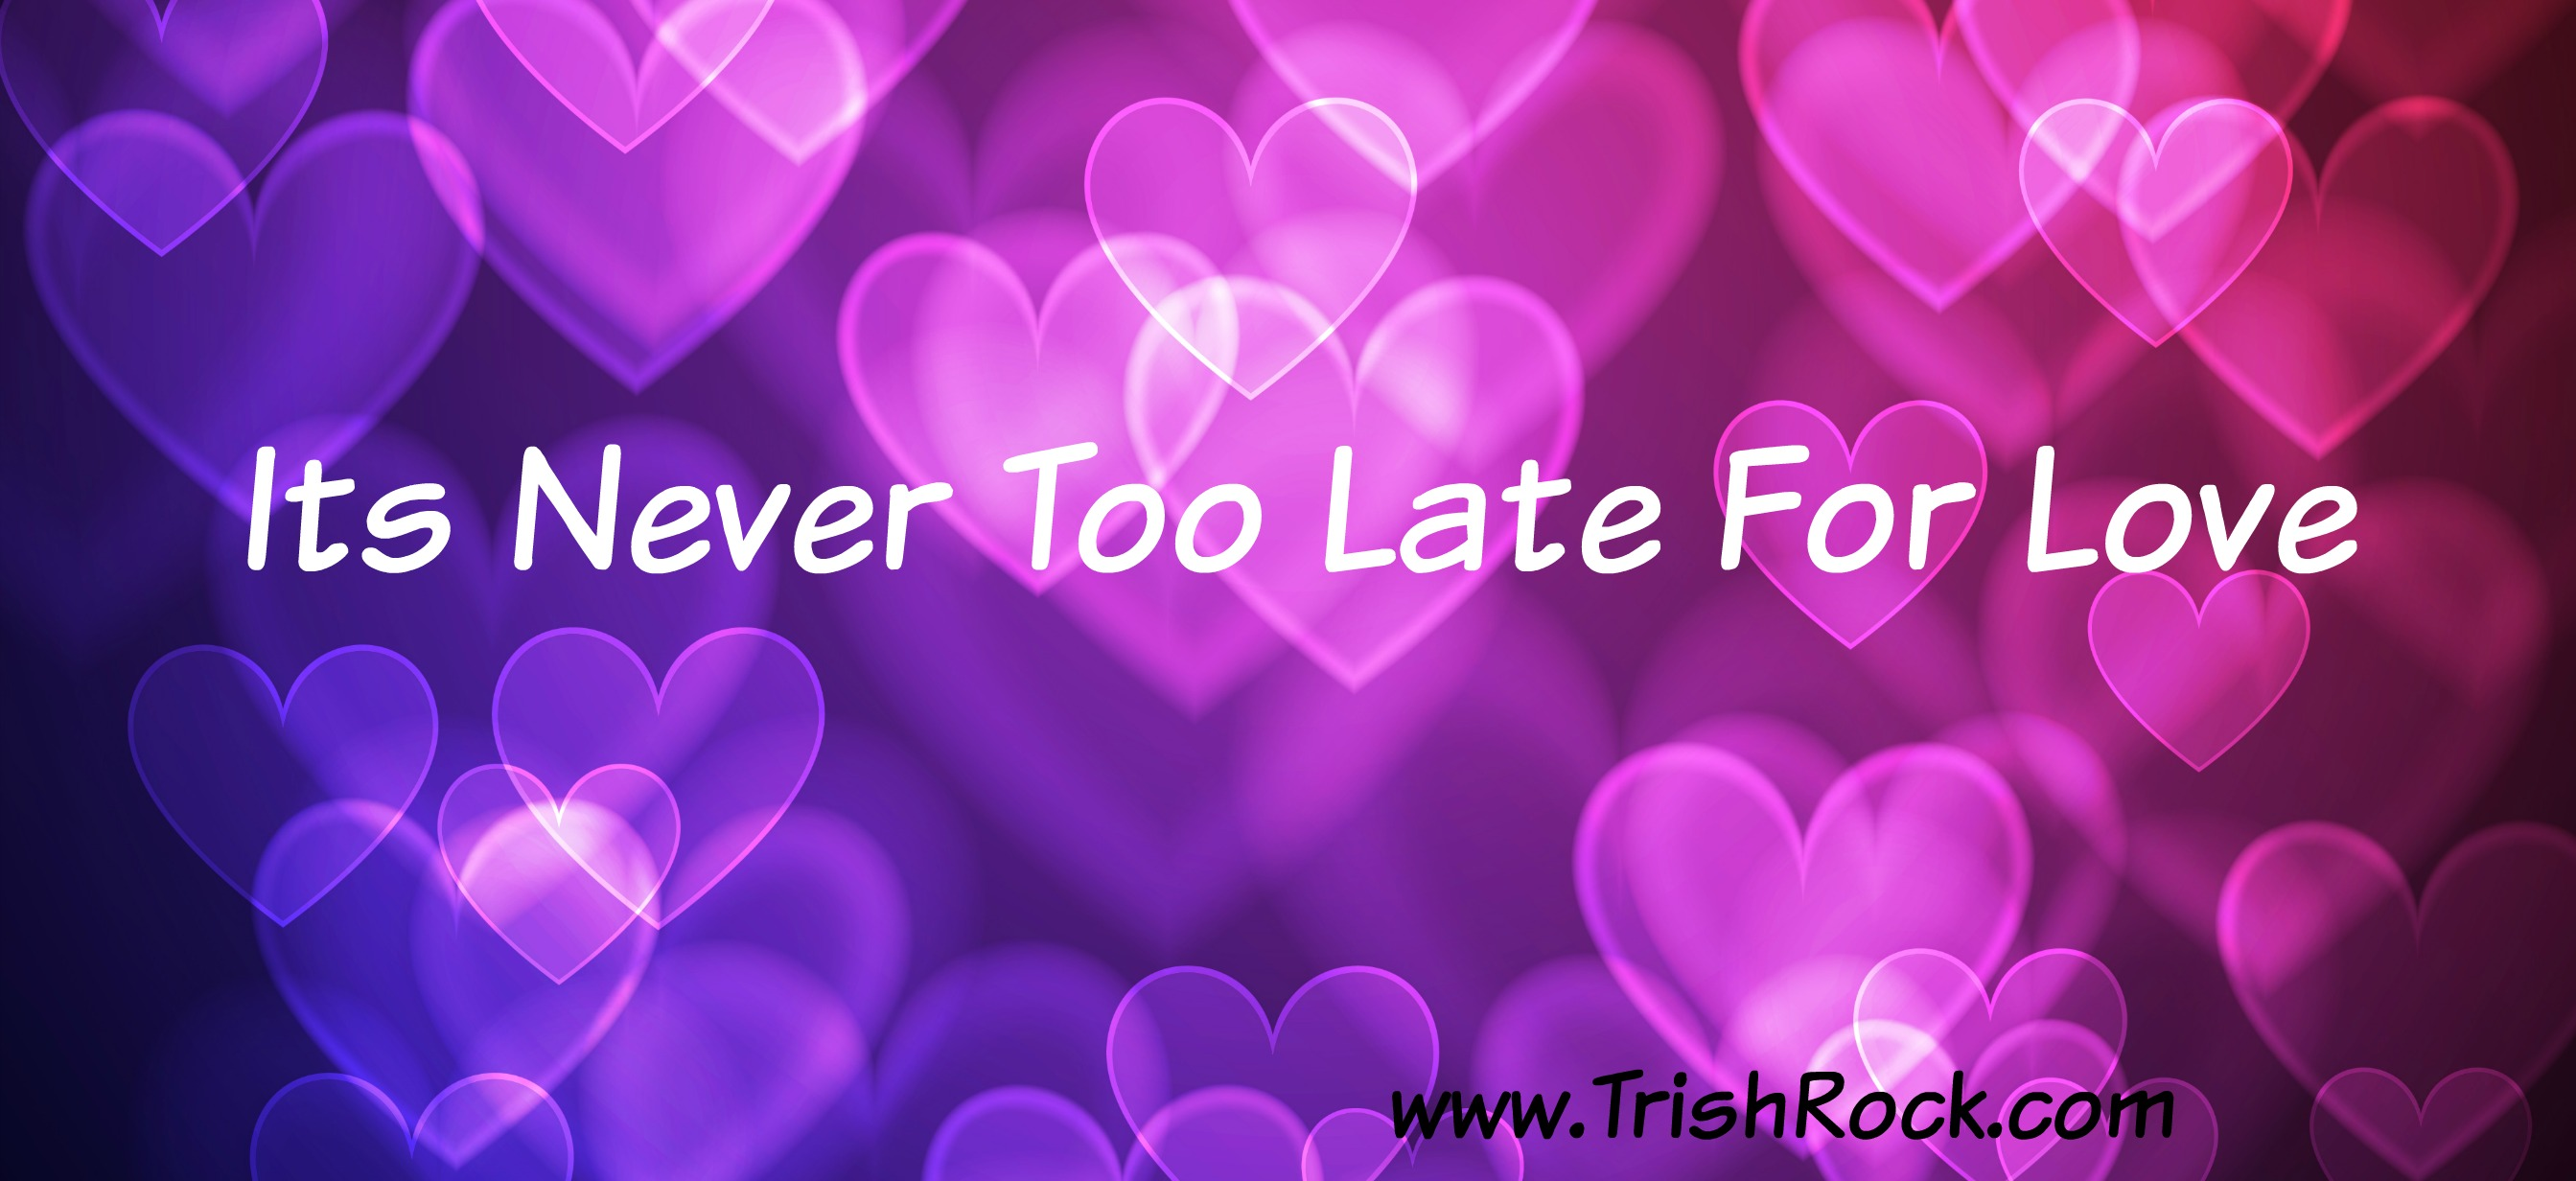 Its Never Too Late For Love